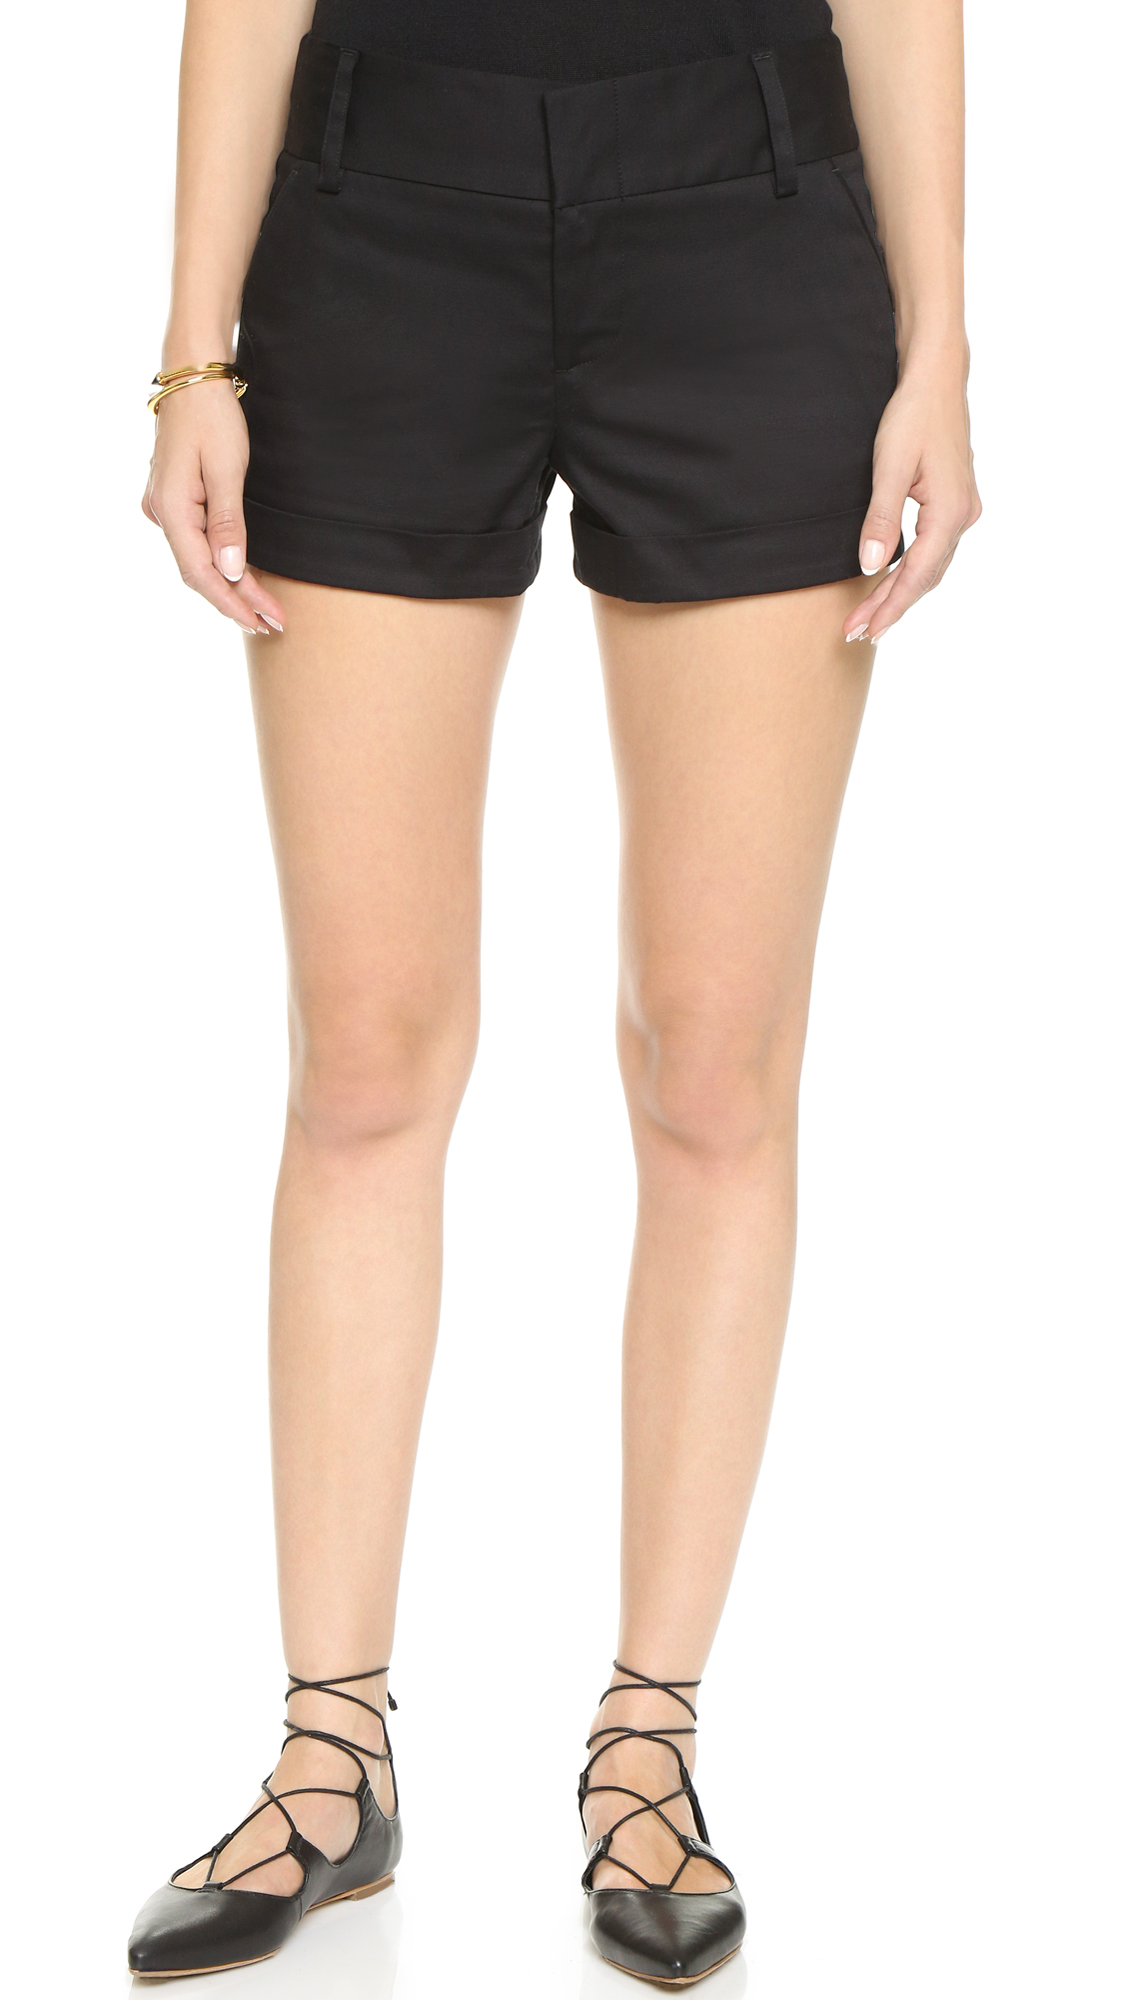 alice + olivia Cady Cuff Shorts - Black